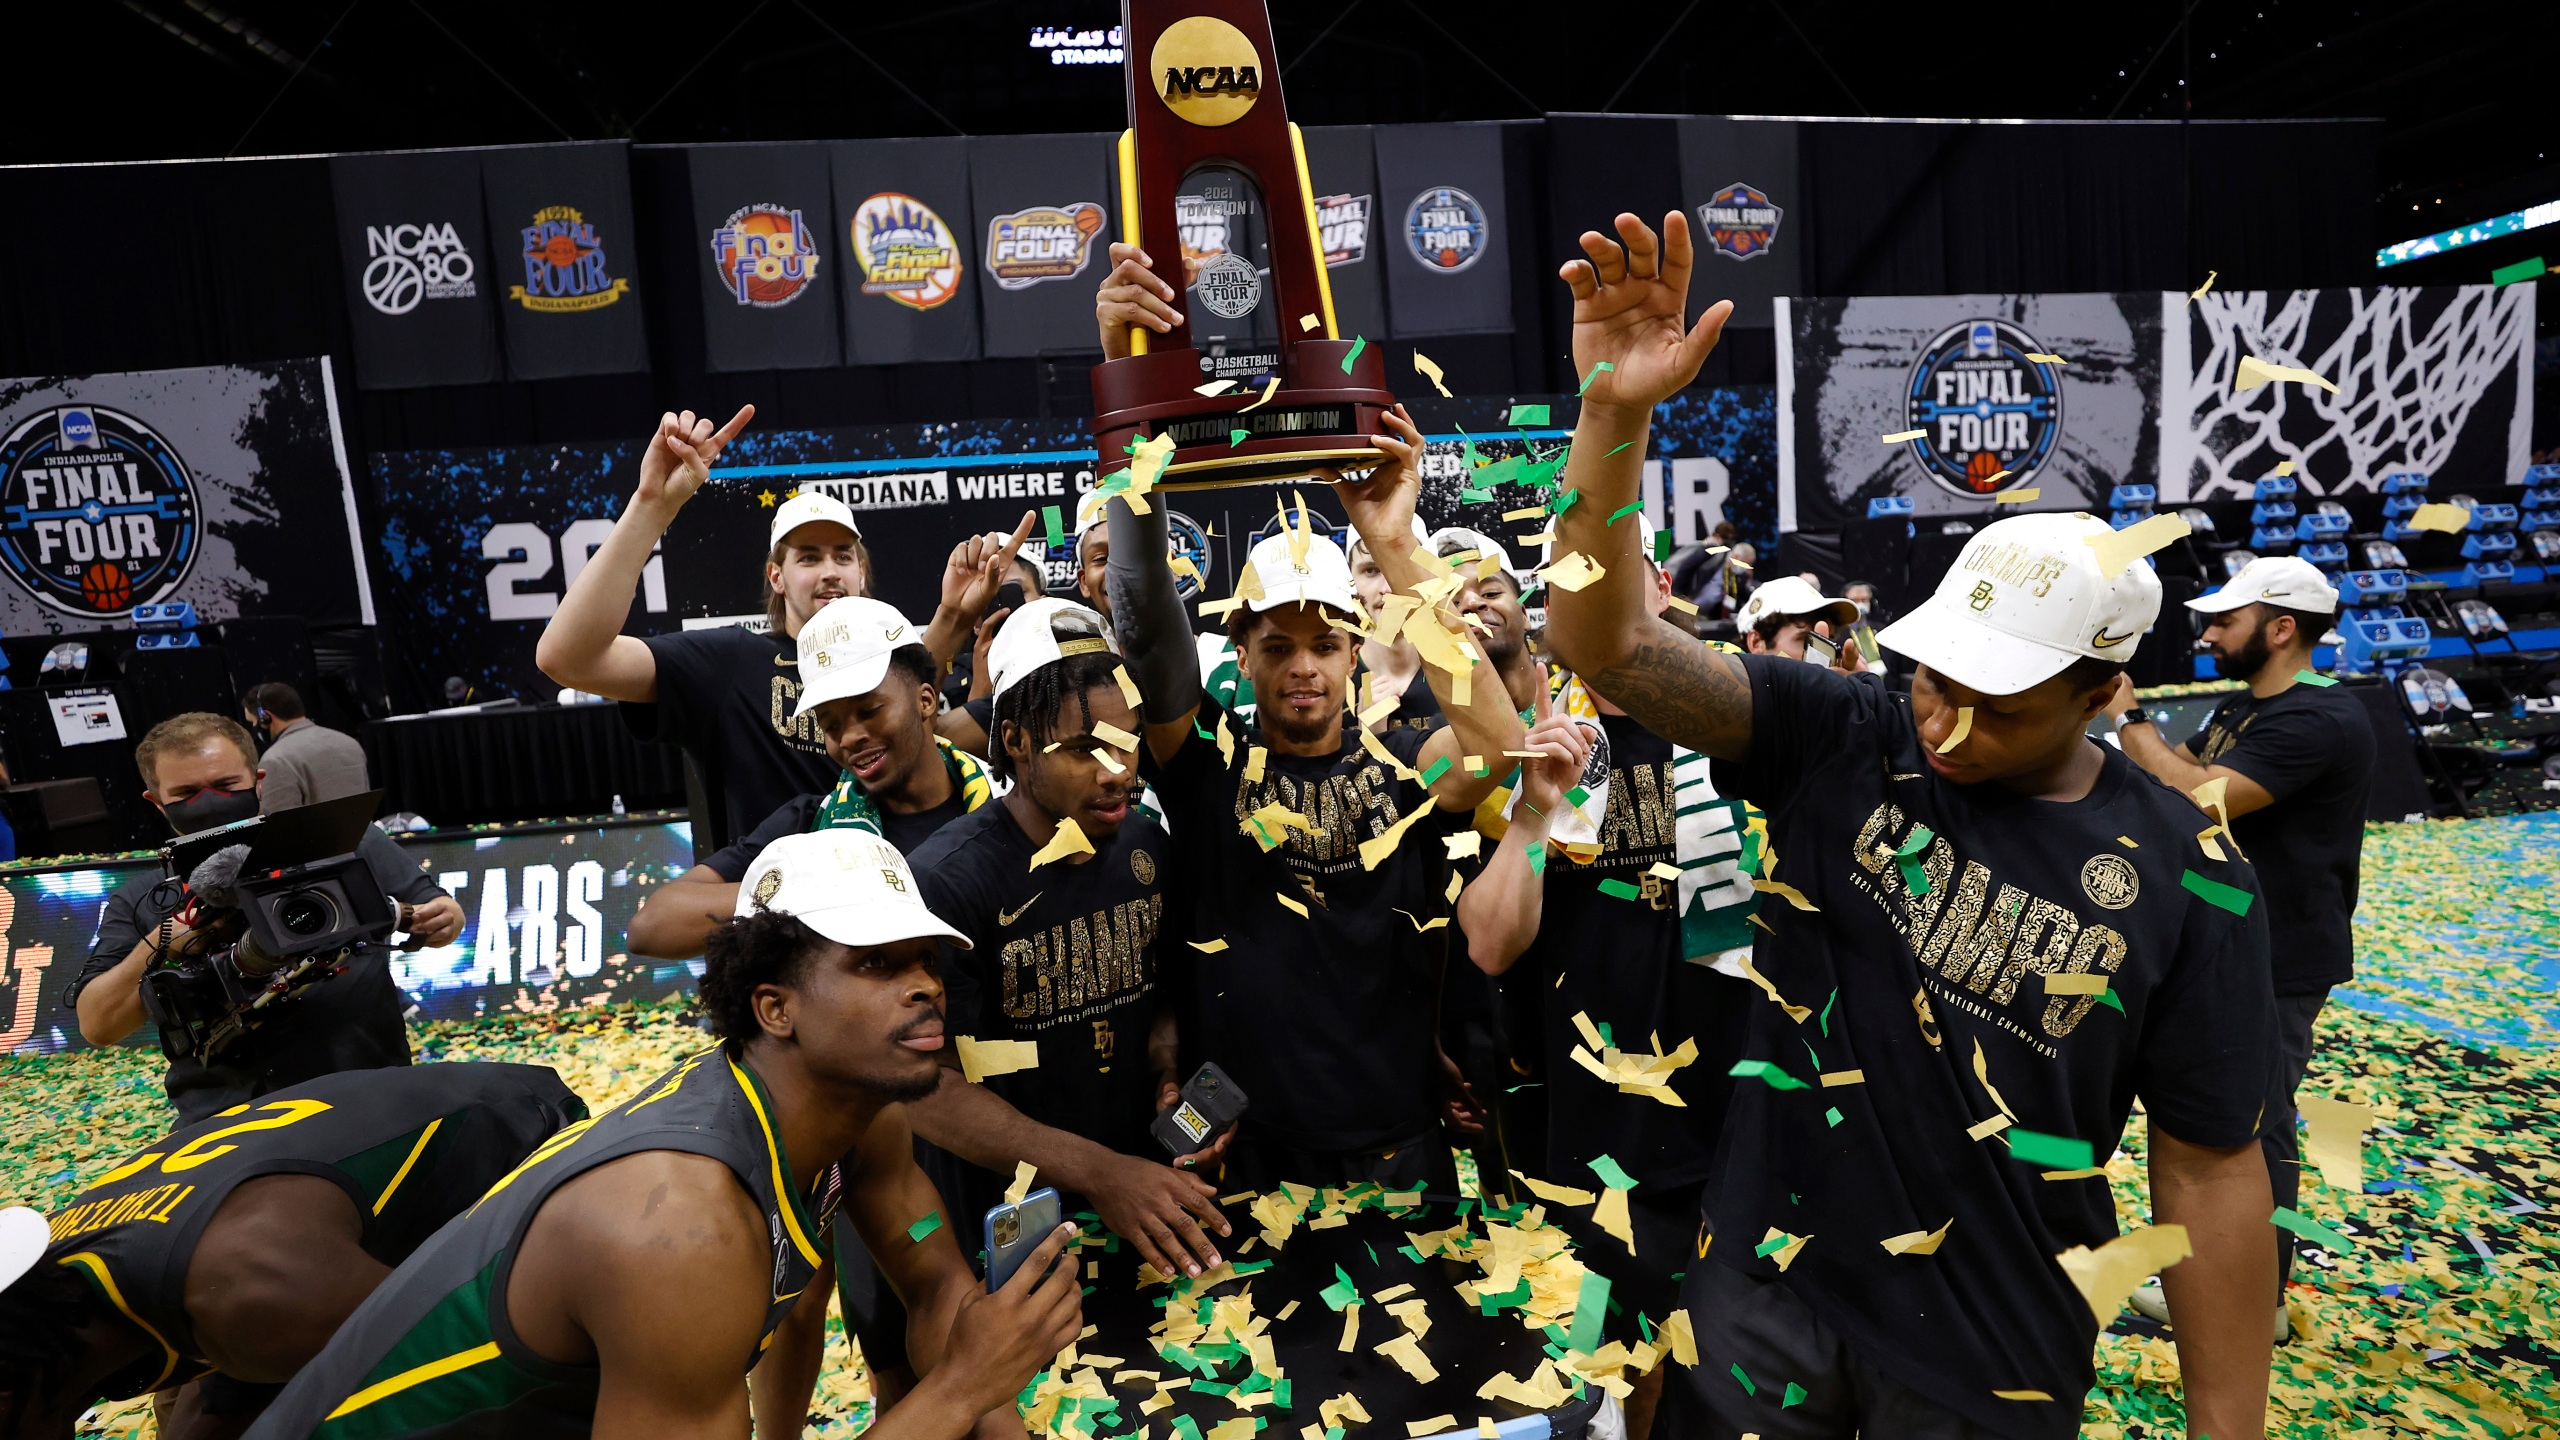 MaCio Teague #31 of the Baylor Bears holds up the trophy after defeating the Gonzaga Bulldogs 86-70 in the National Championship game of the 2021 NCAA Men's Basketball Tournament at Lucas Oil Stadium on April 5, 2021, in Indianapolis, Indiana. (Jamie Squire/Getty Images)